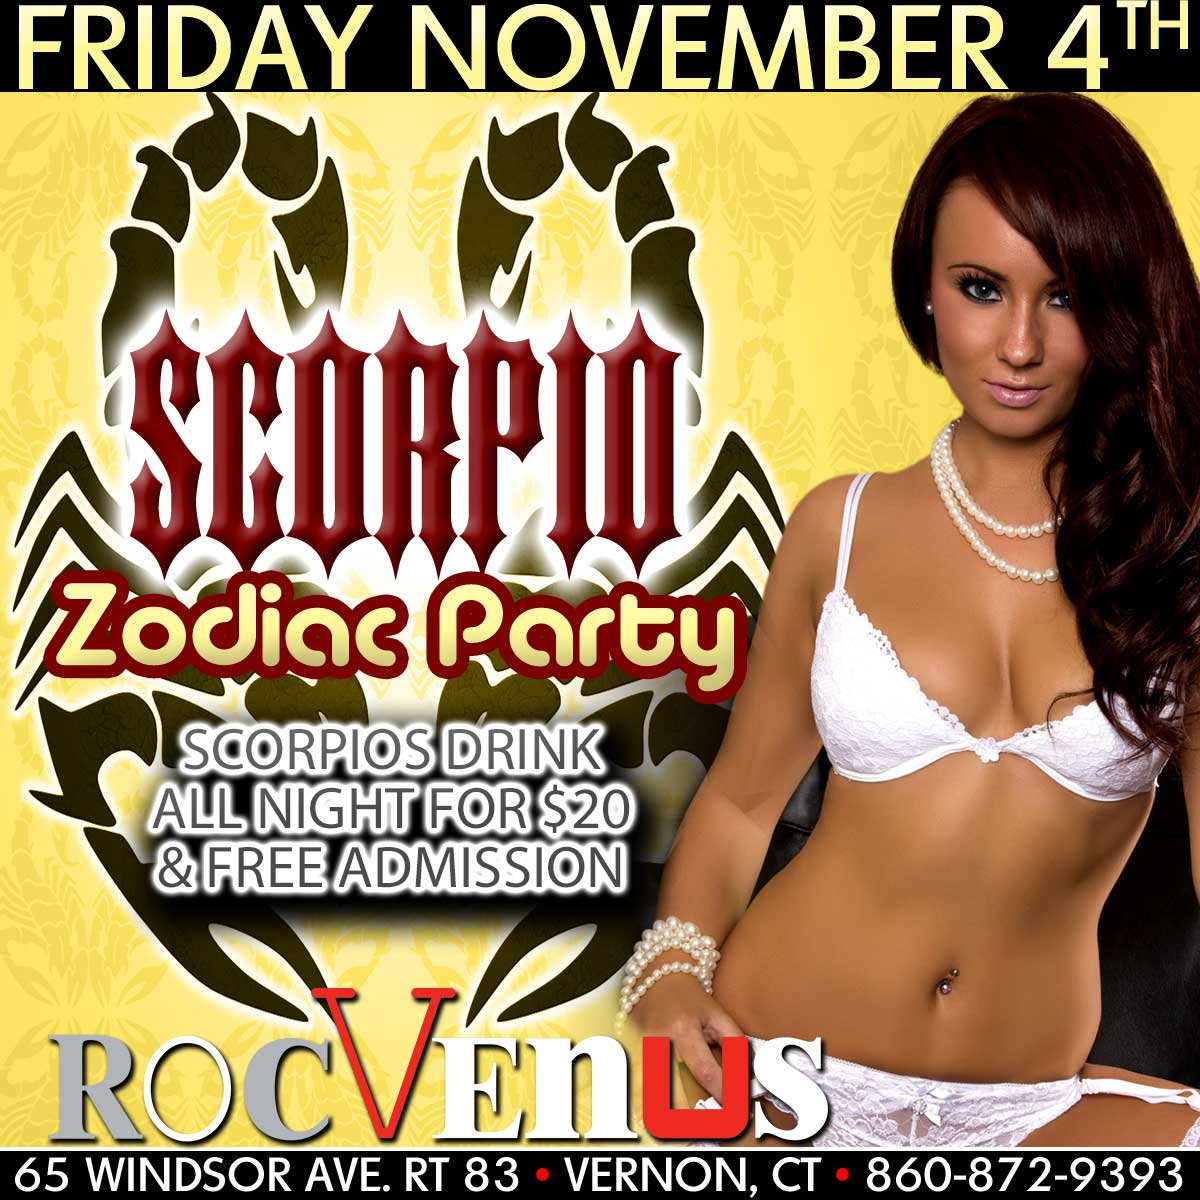 Scorpio Zodiac Party | RocVenus Strip Club Connecticut